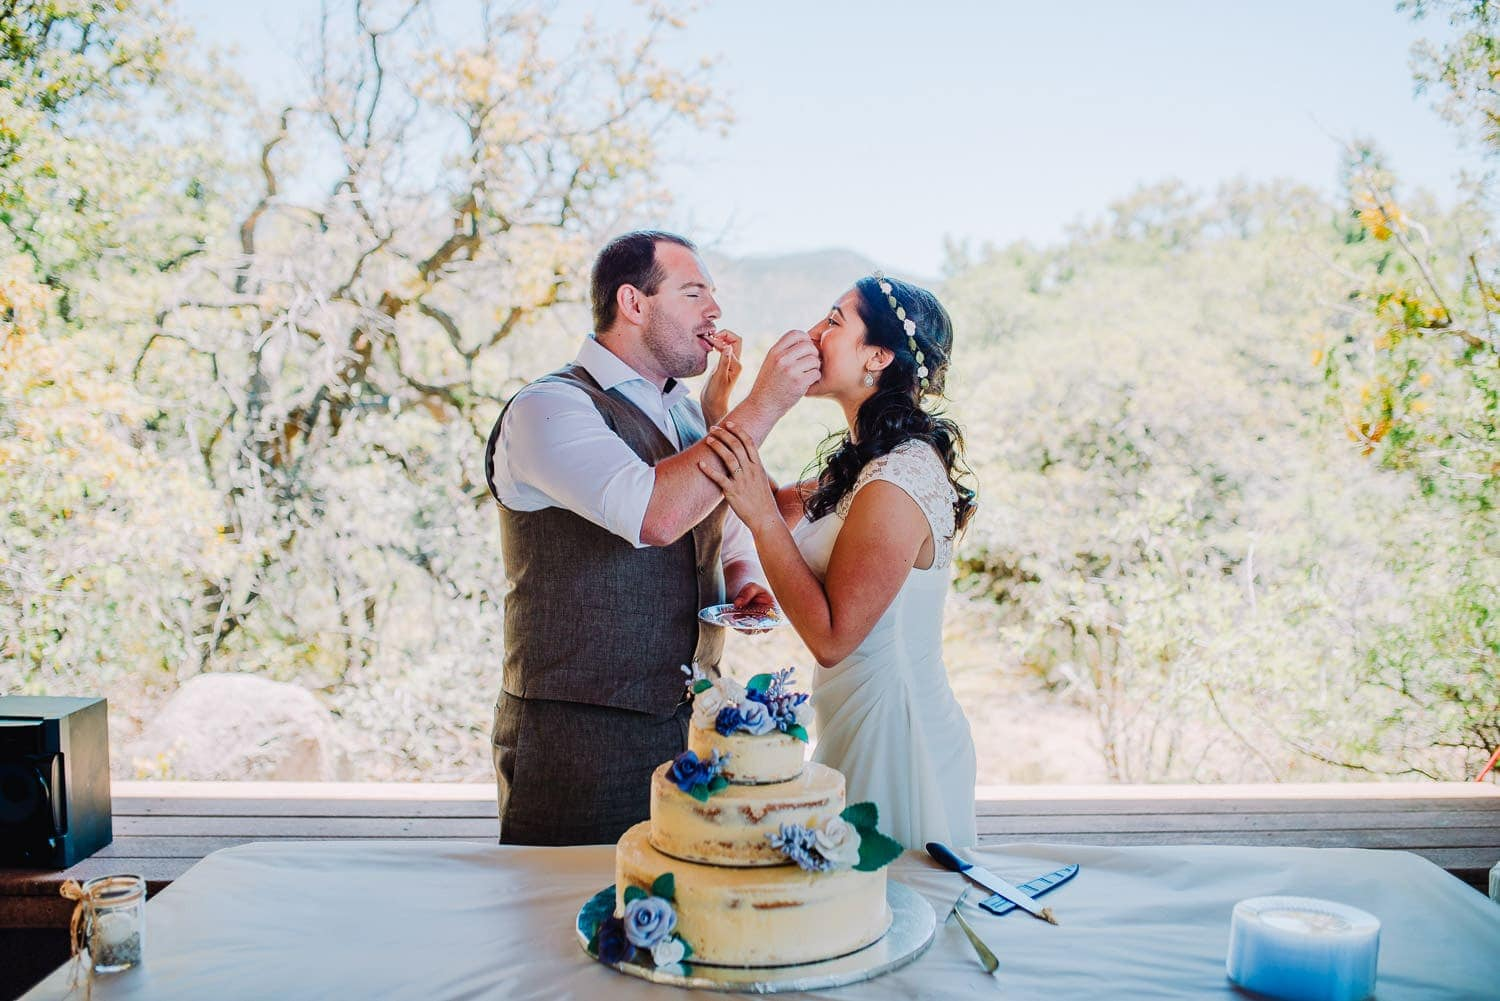 The bride and groom are feeding each other a piece of cake and smiling.